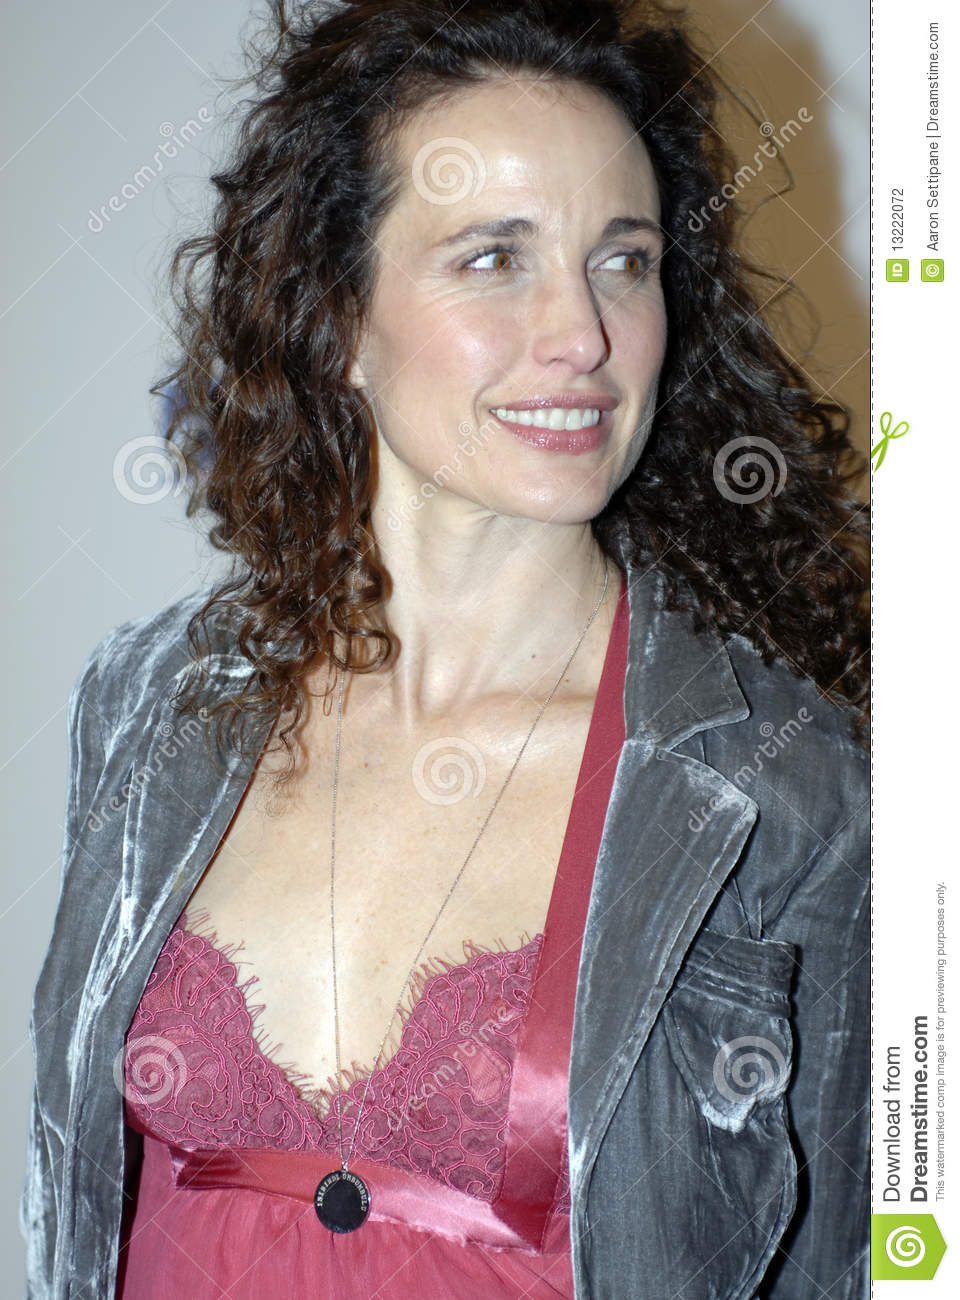 Andie Macdowell Foto andie macdowell on the red carpet editorial photography